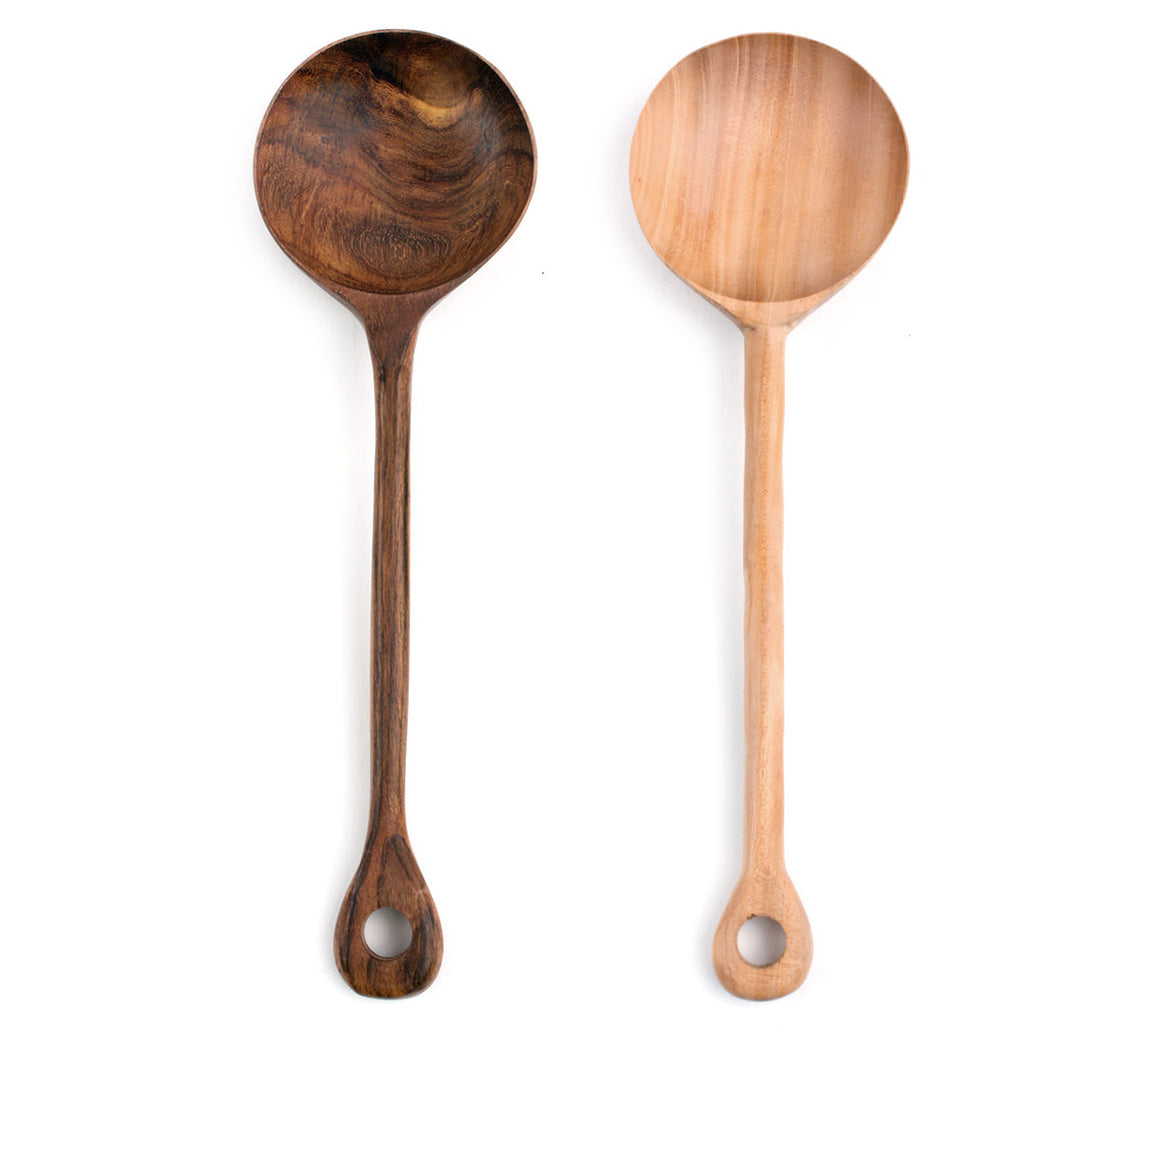 Mahogany or Shesham Serving Spoon